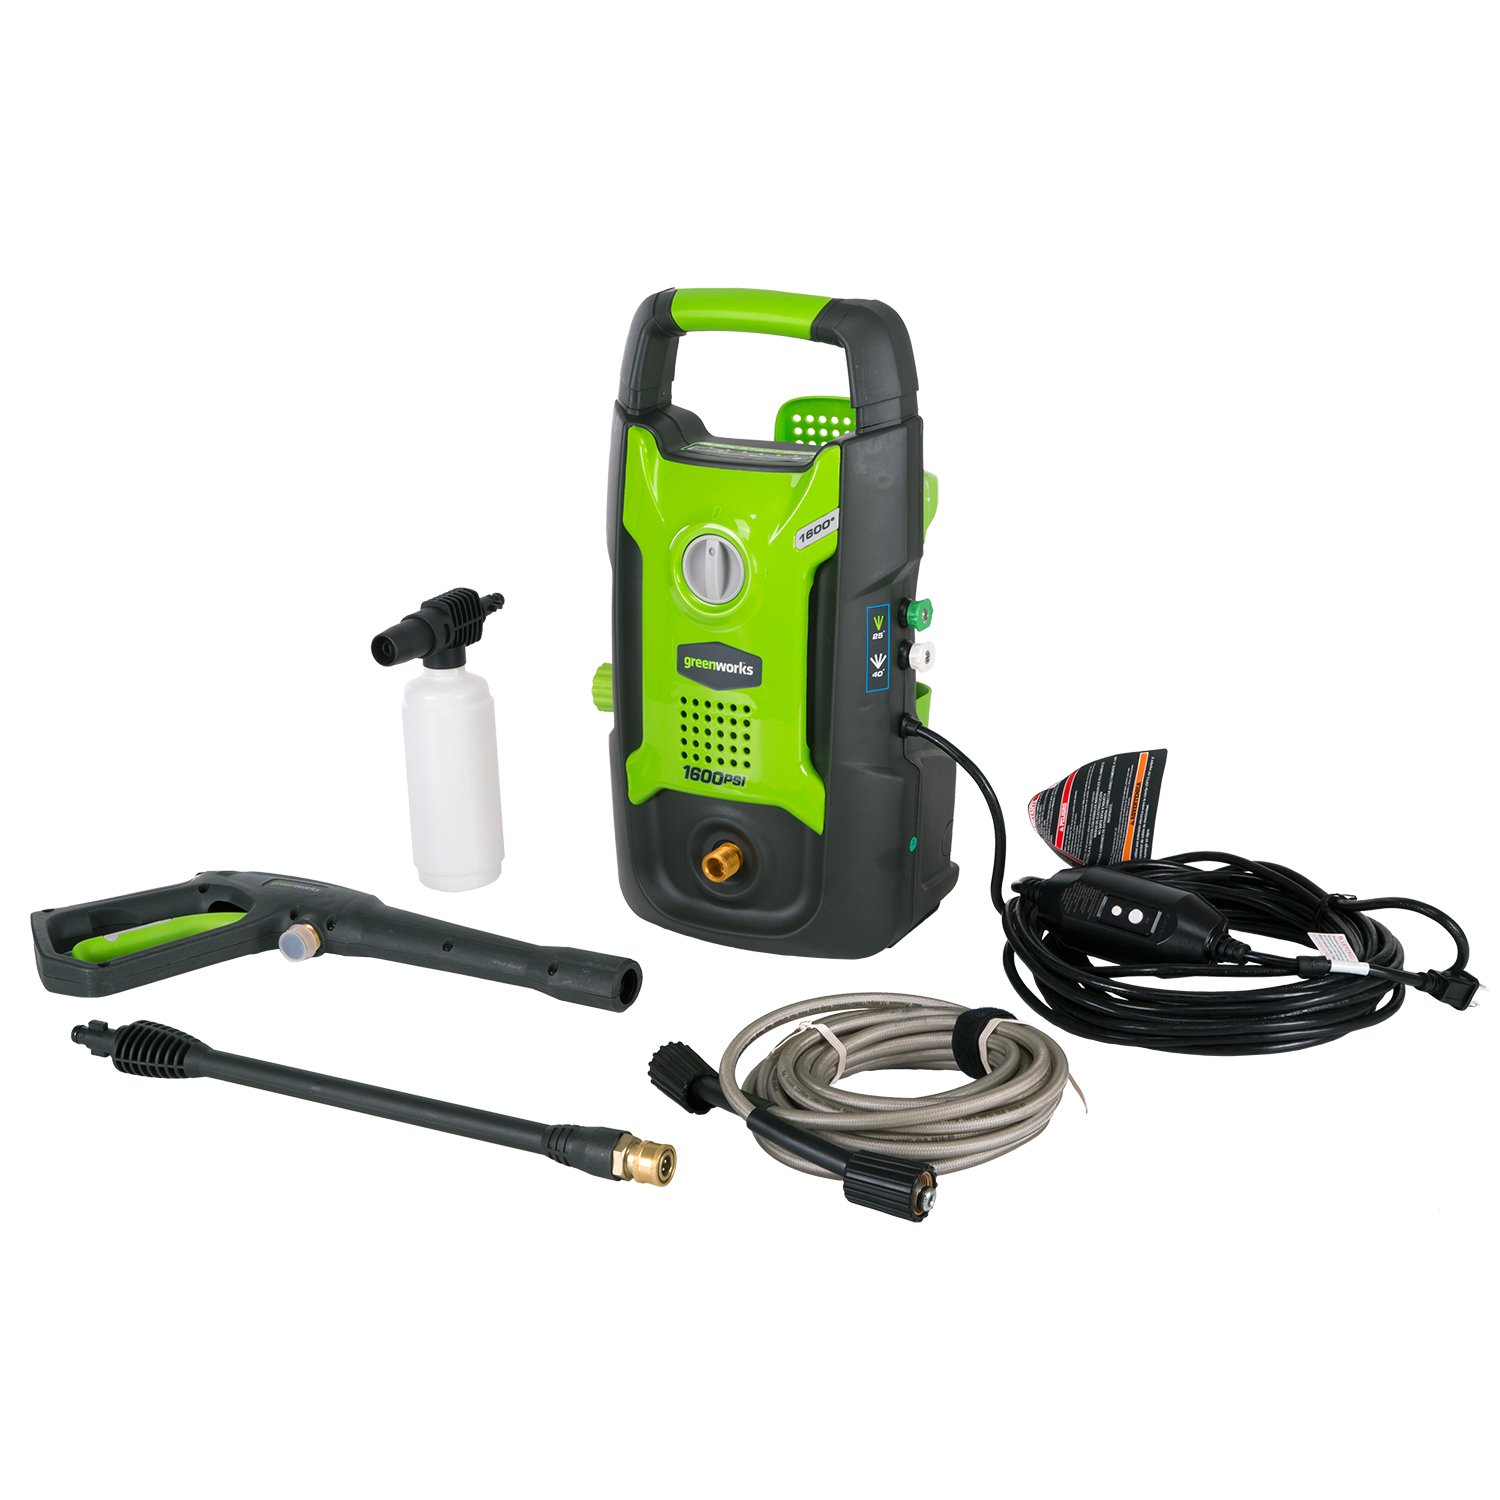 The Best Electric Pressure Washers For Your Garden: Reviews & Buying Guide 16